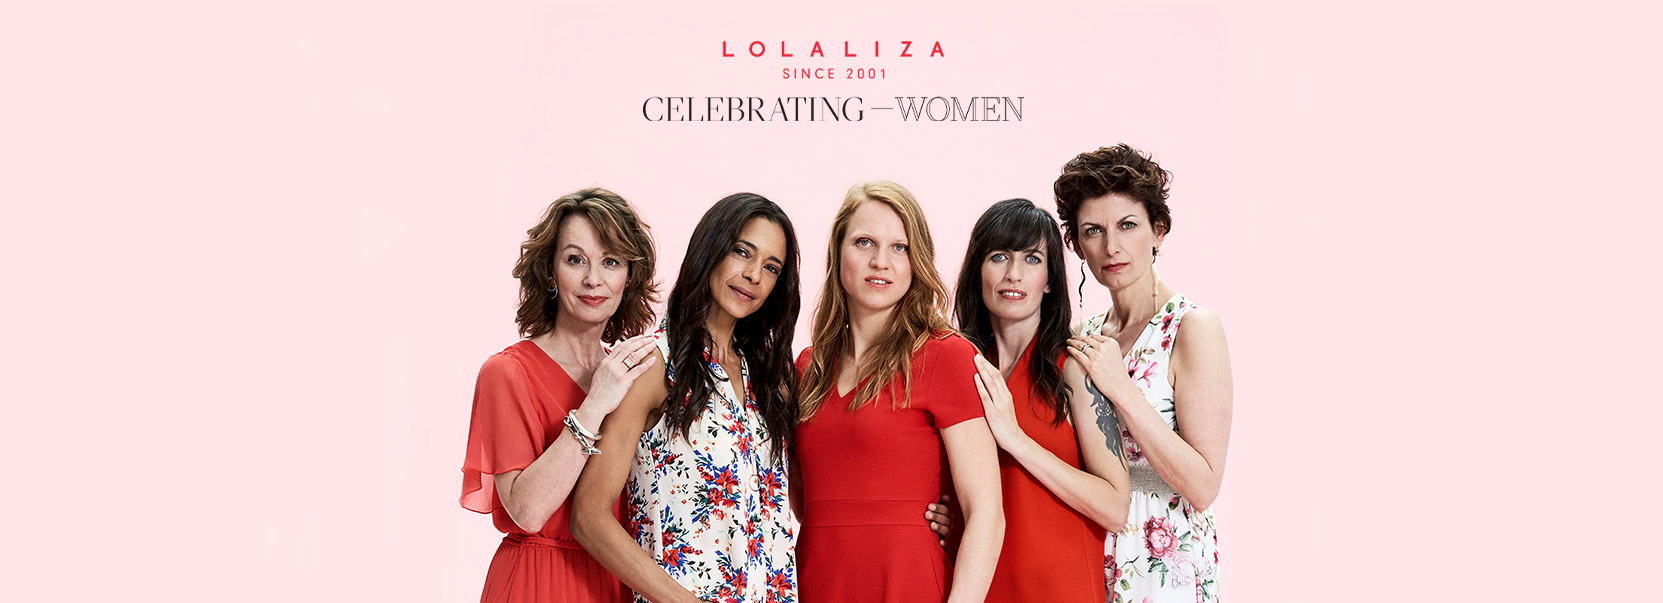 Women of lolaliza list